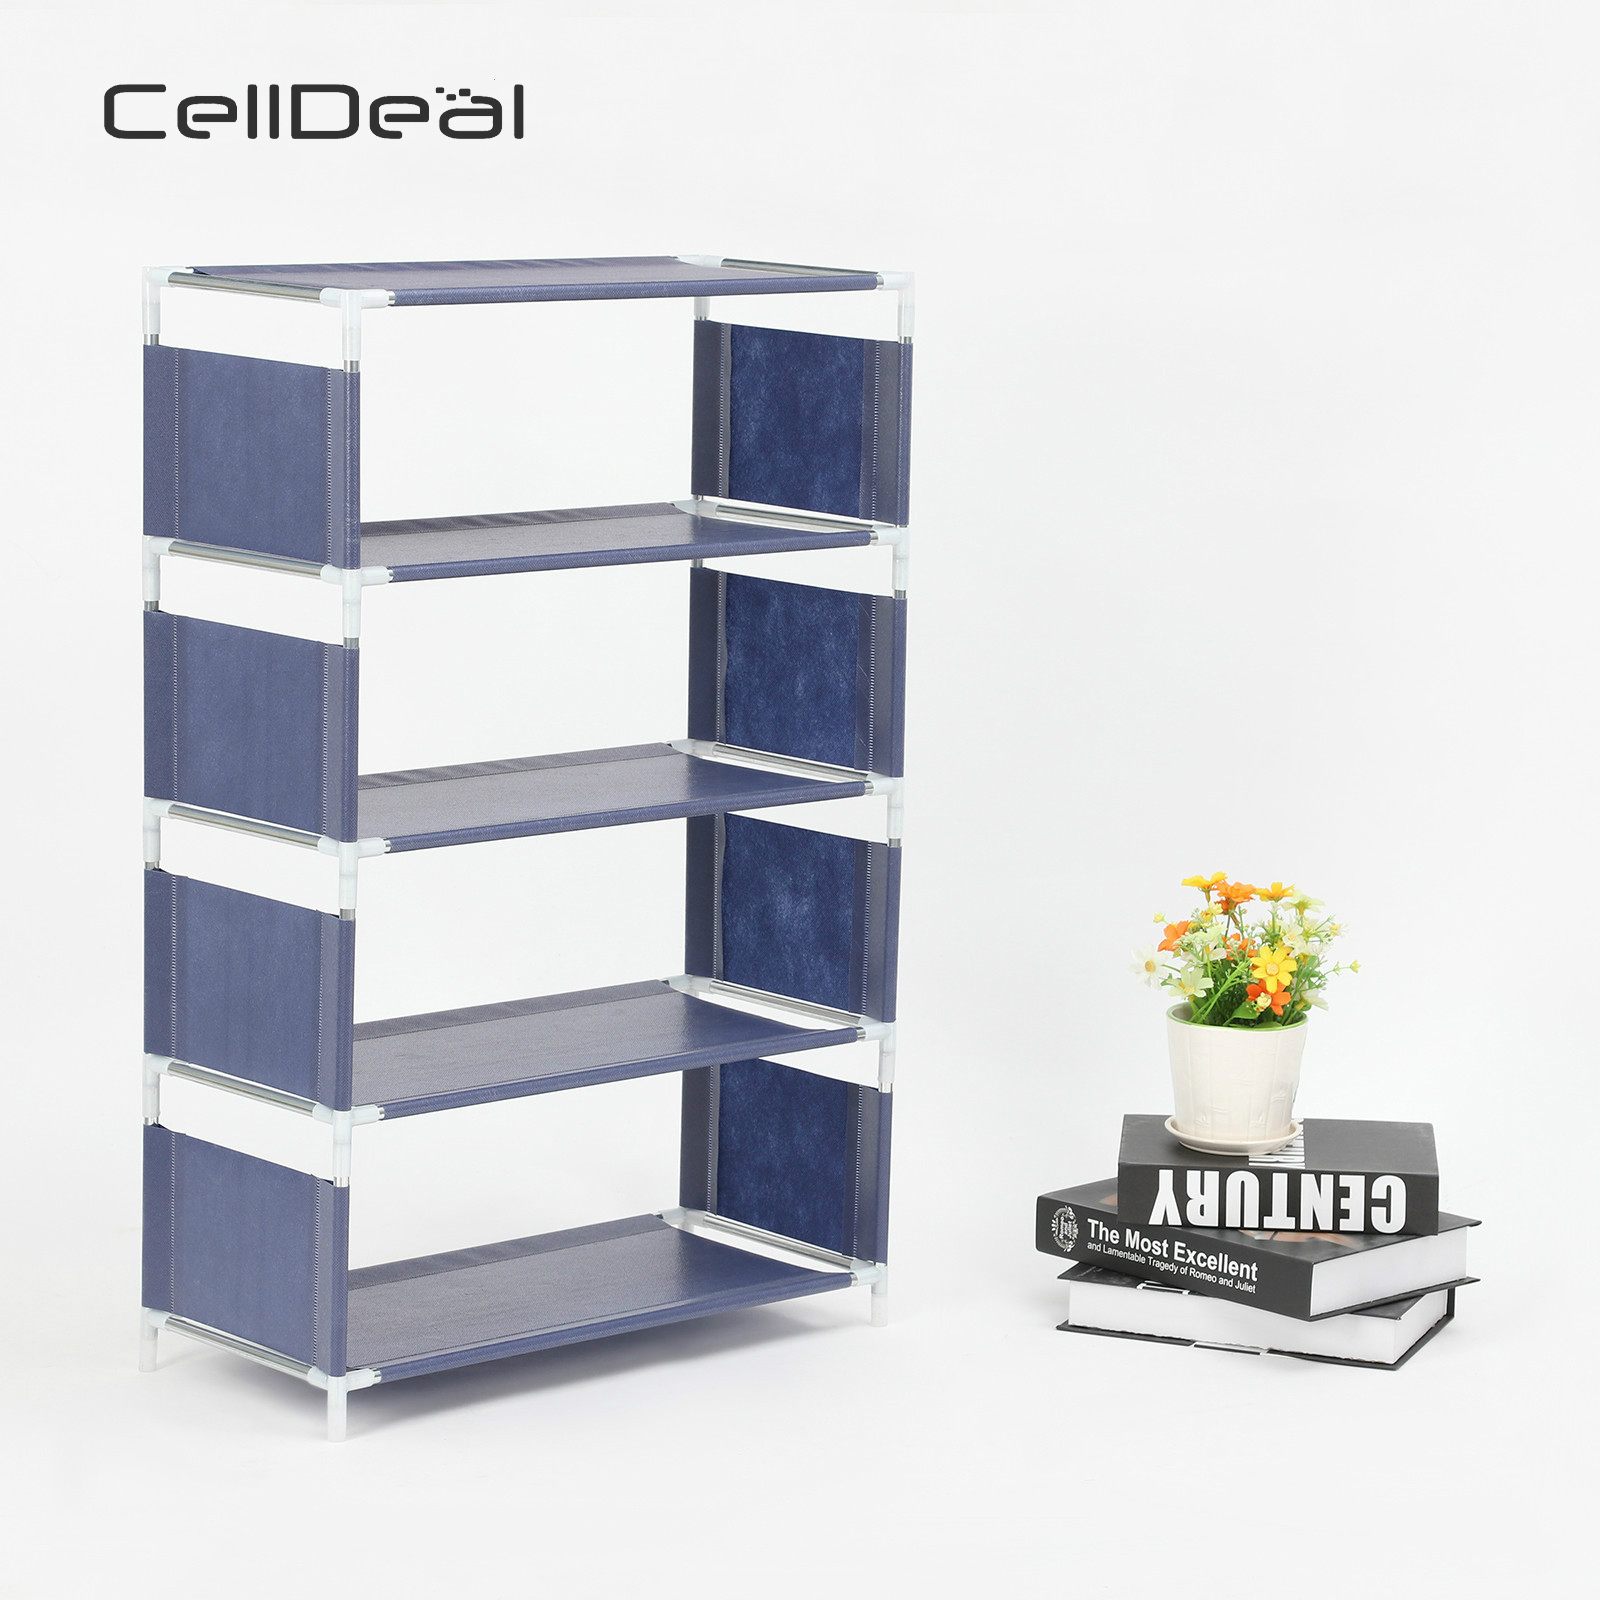 Shoe Rack Assemble Shoes Shelf Multi Functional Simple Hallway Cabinet Organizer Holder Storage Solid Stand Shelves Shoe Living